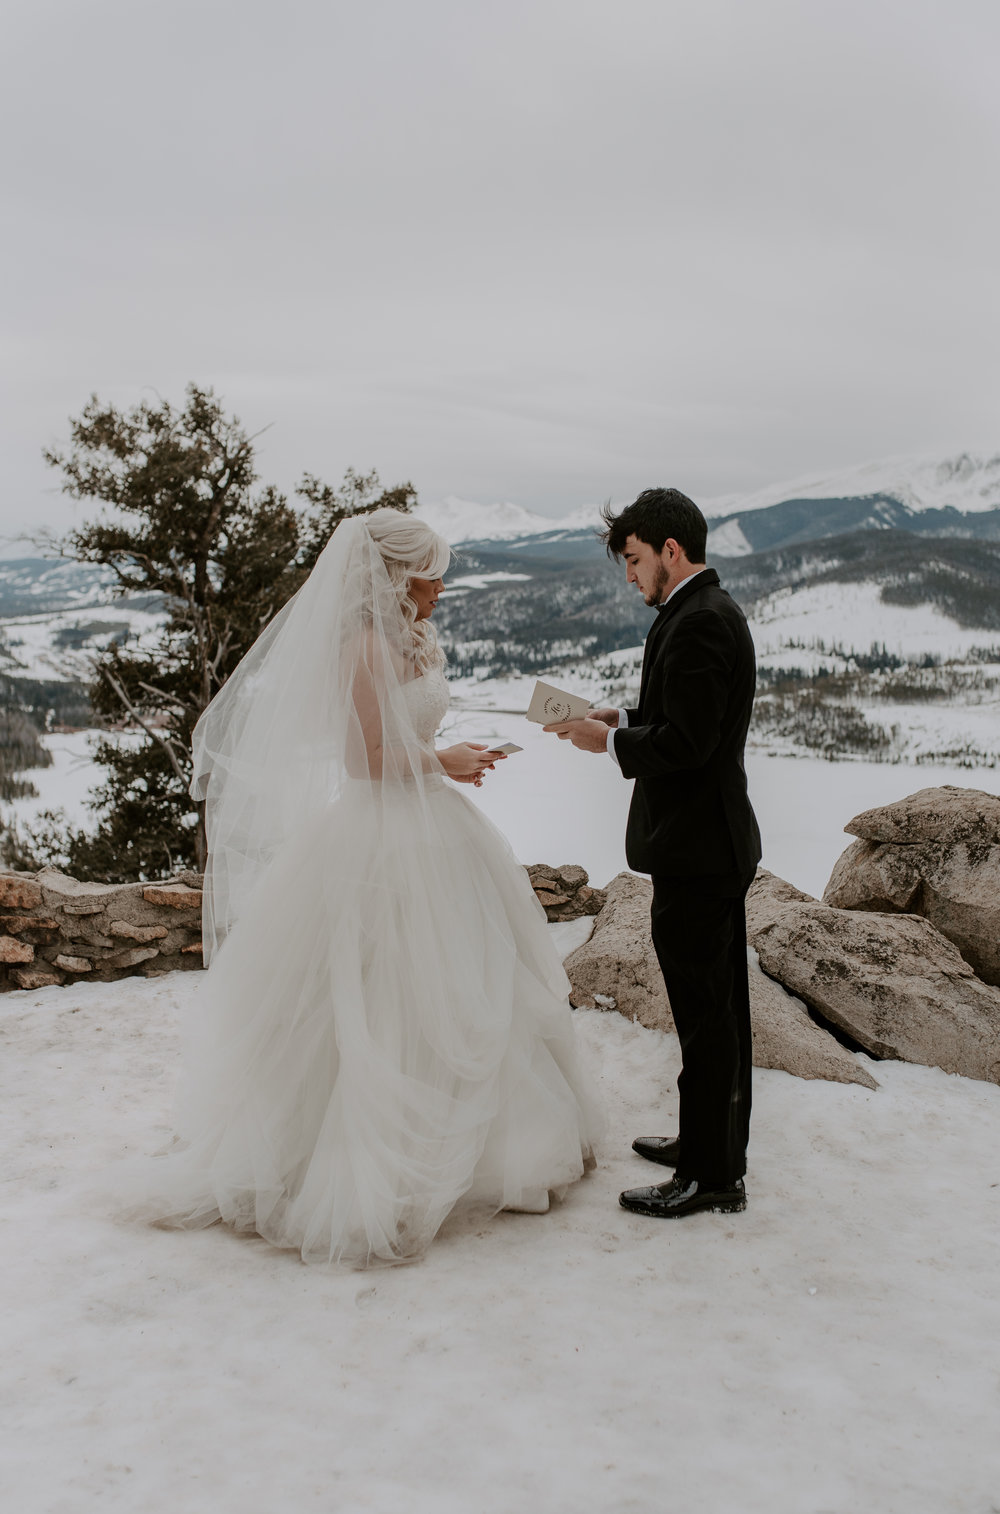 Colorado elopement photographer based in Denver. Sapphire Point winter elopement.